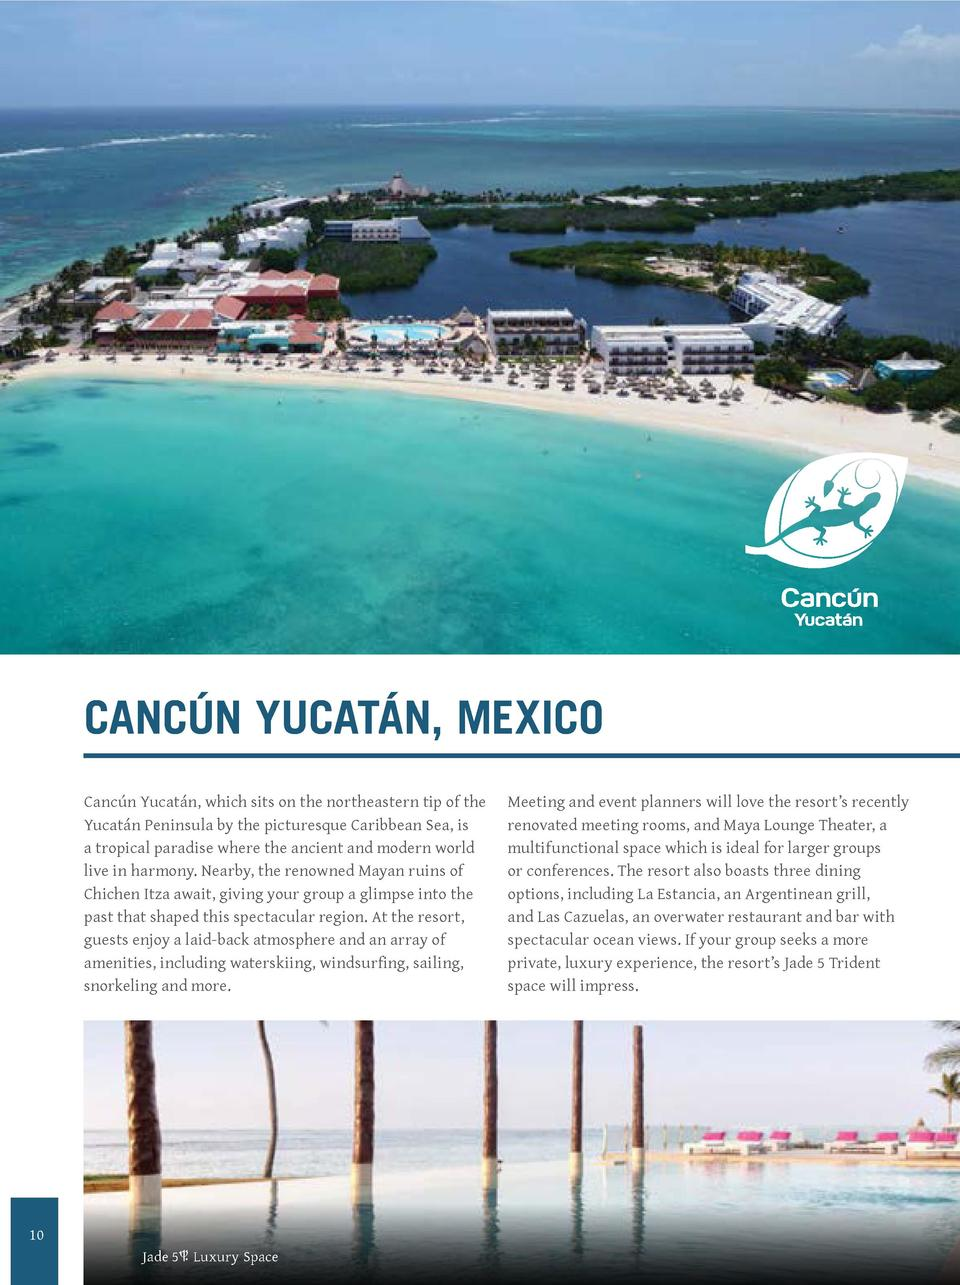 CANC  N YUCAT  N, MEXICO Canc  n Yucat  n, which sits on the northeastern tip of the Yucat  n Peninsula by the picturesque...